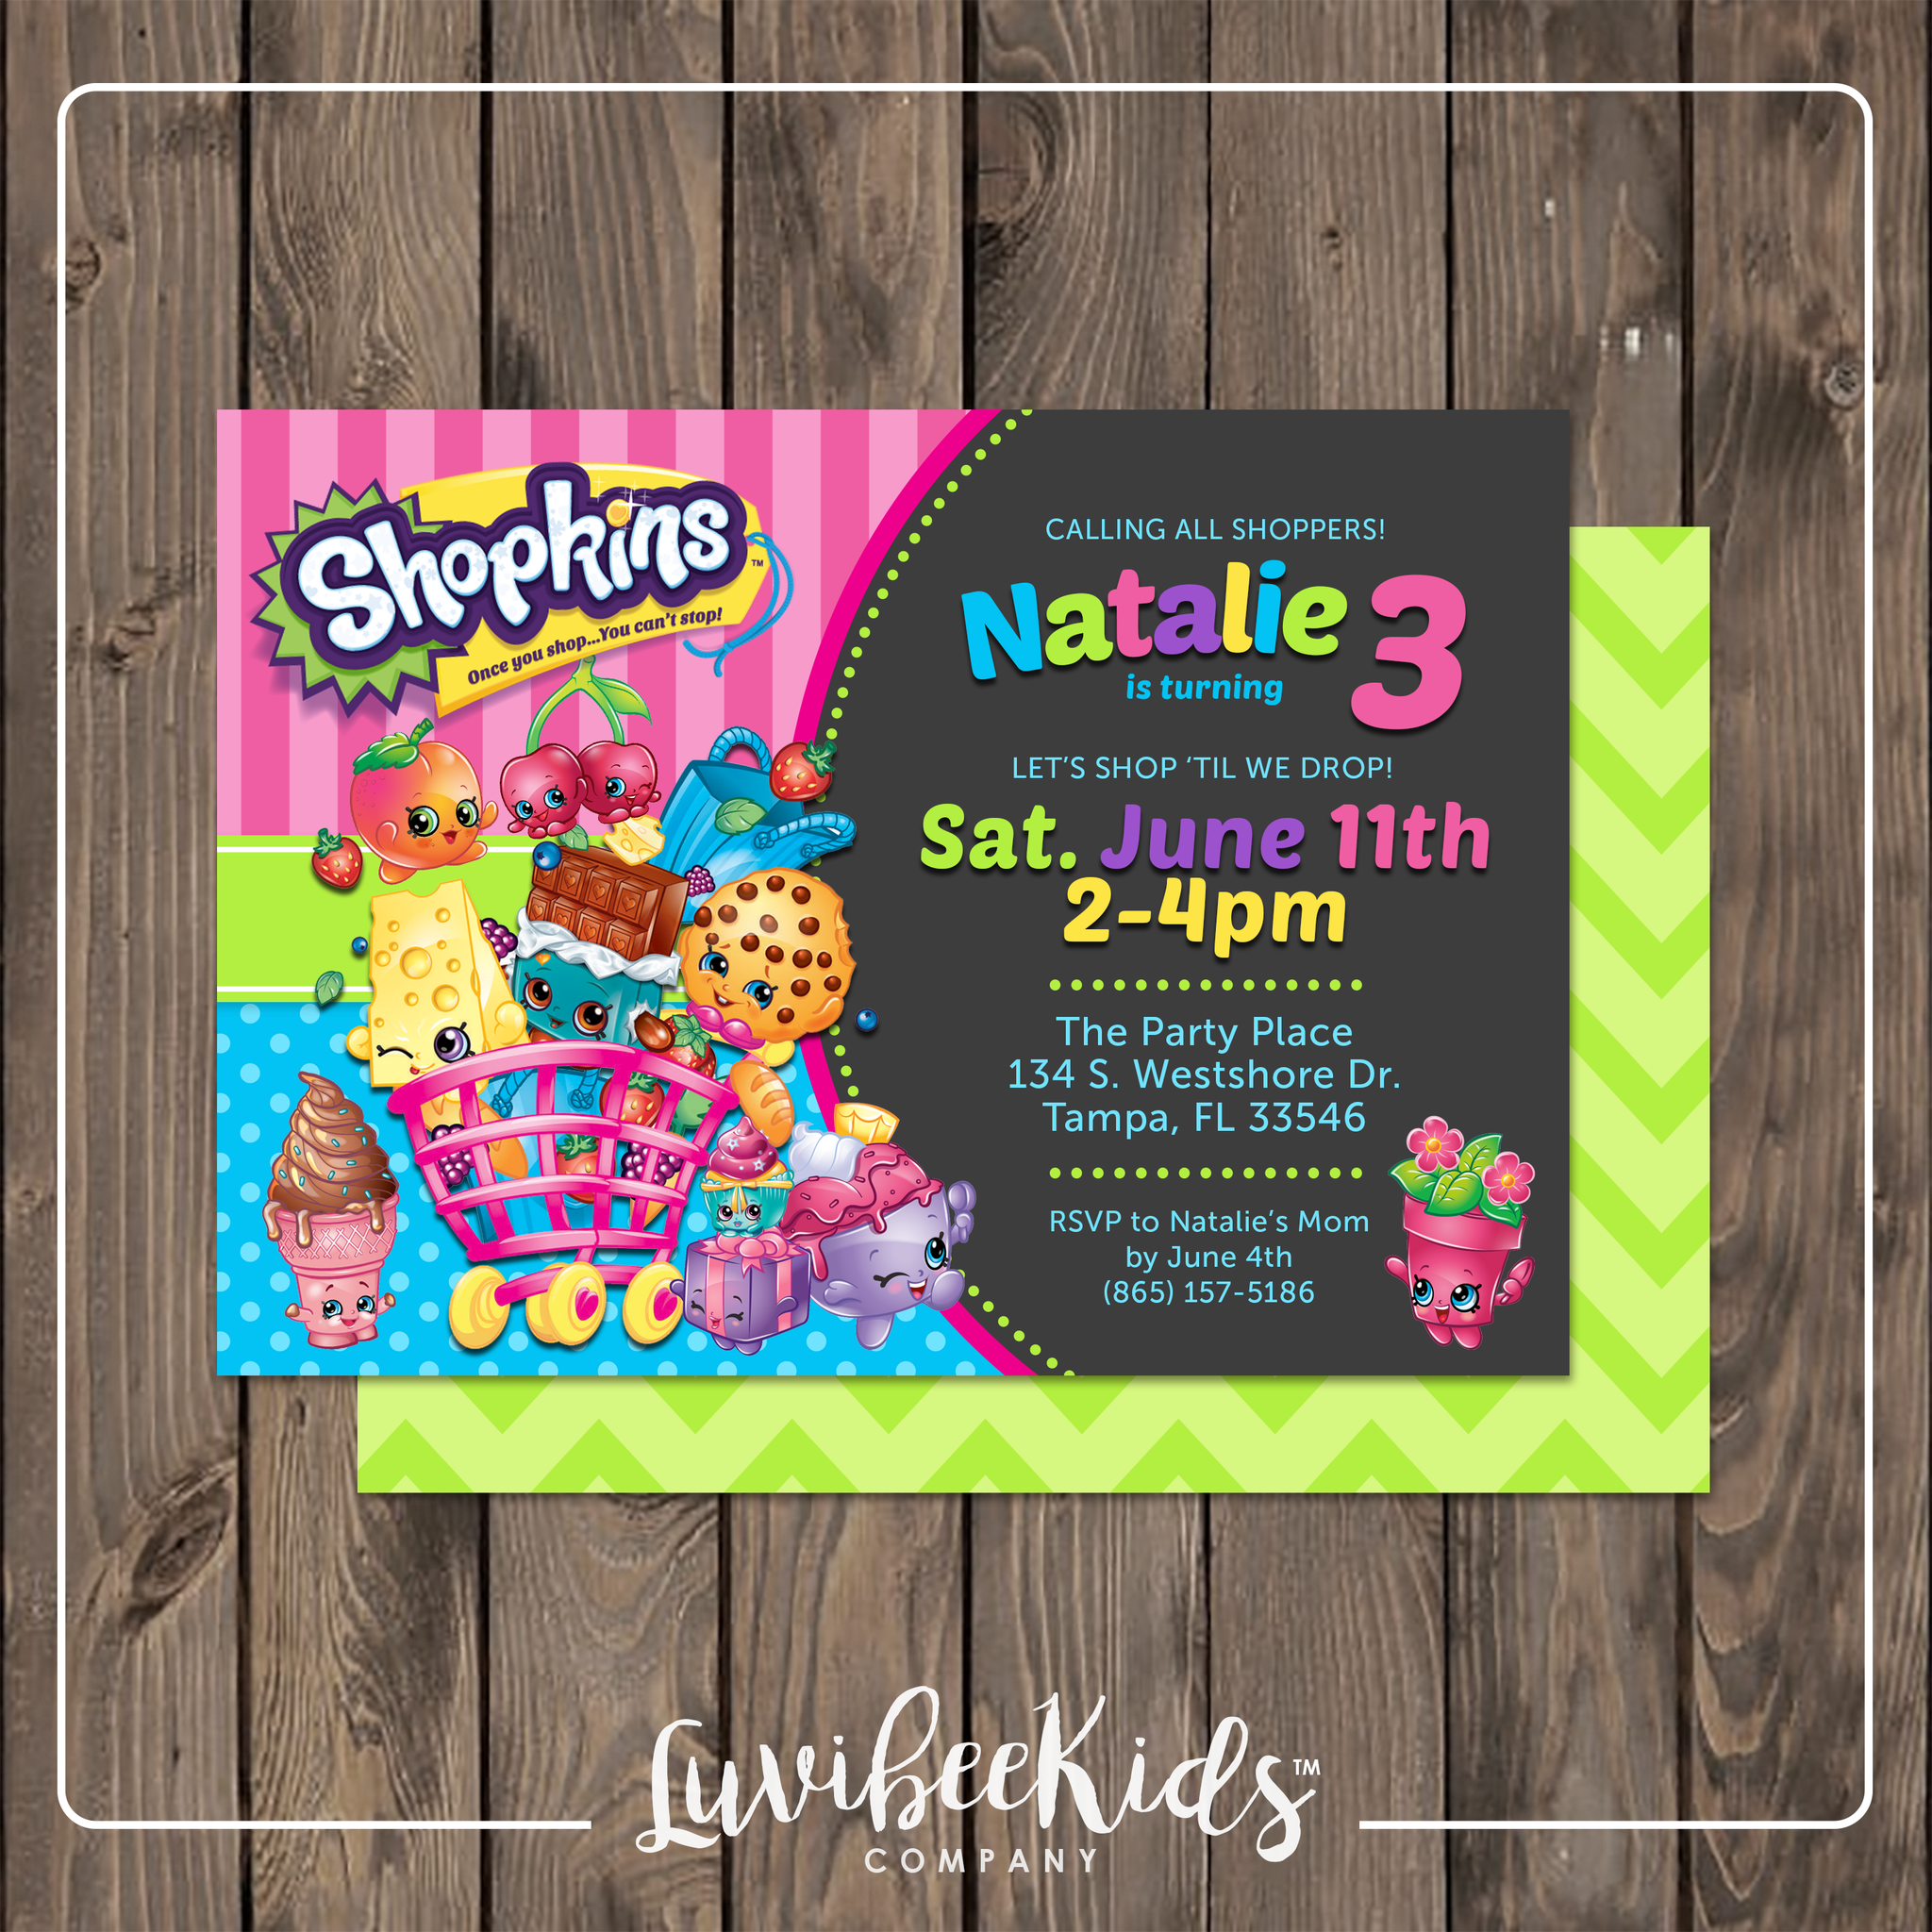 photo relating to Shopkins Season 3 List Printable identify Shopkins Invitation Printable Birthday Invitation